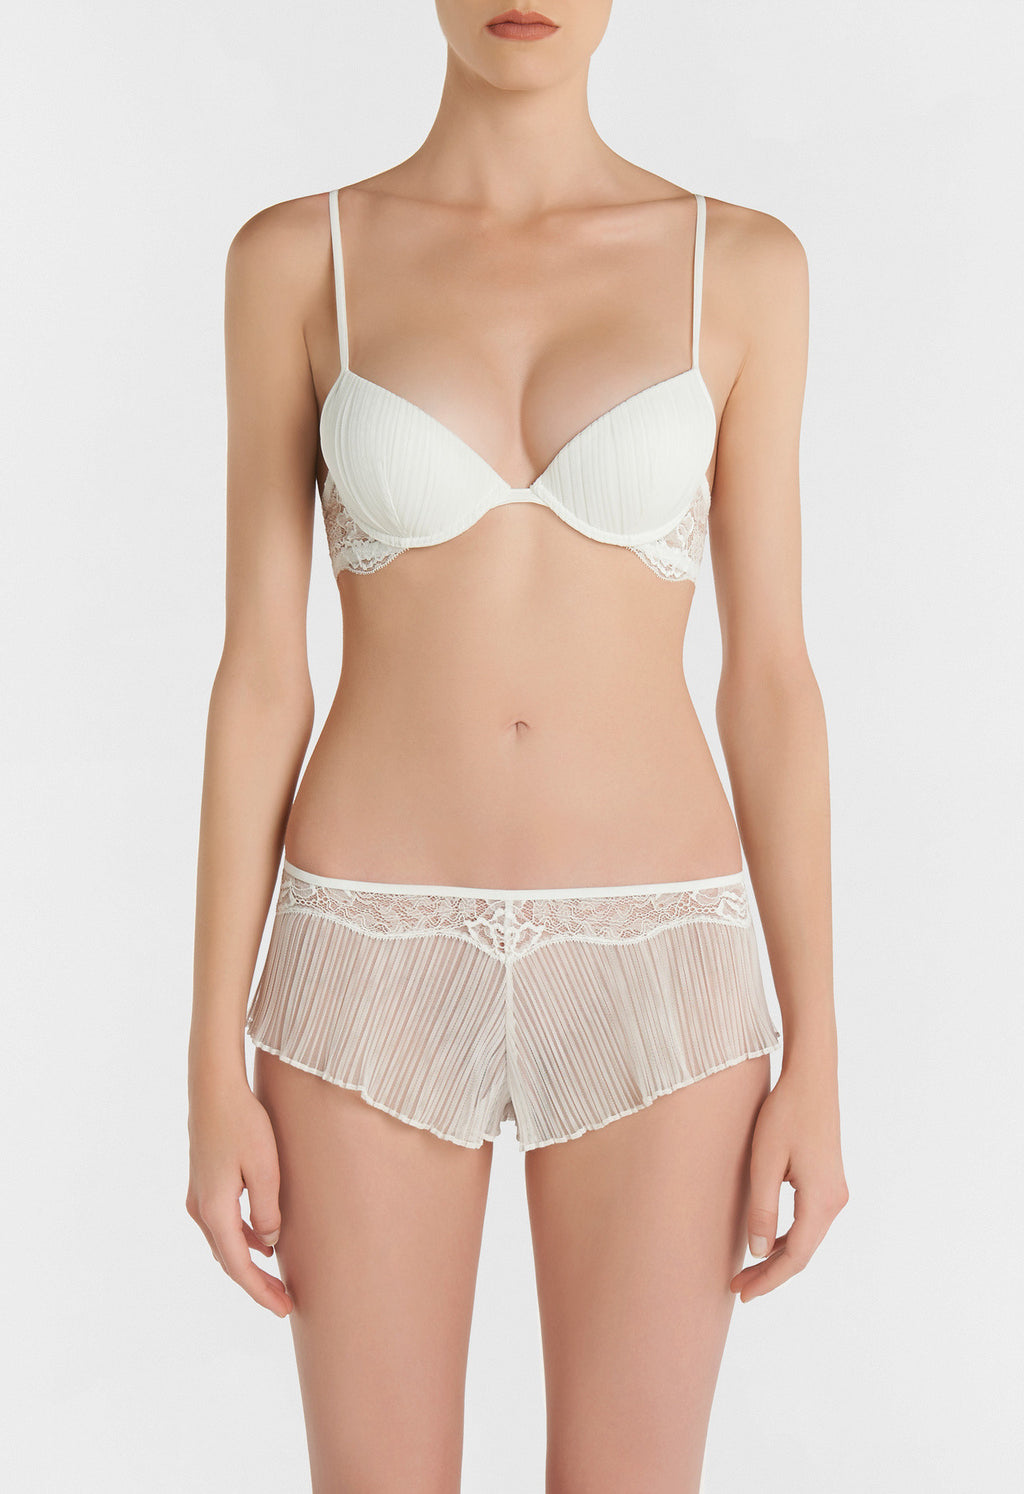 Off-White Push up Bra in Pleated Tulle and Leavers Lace